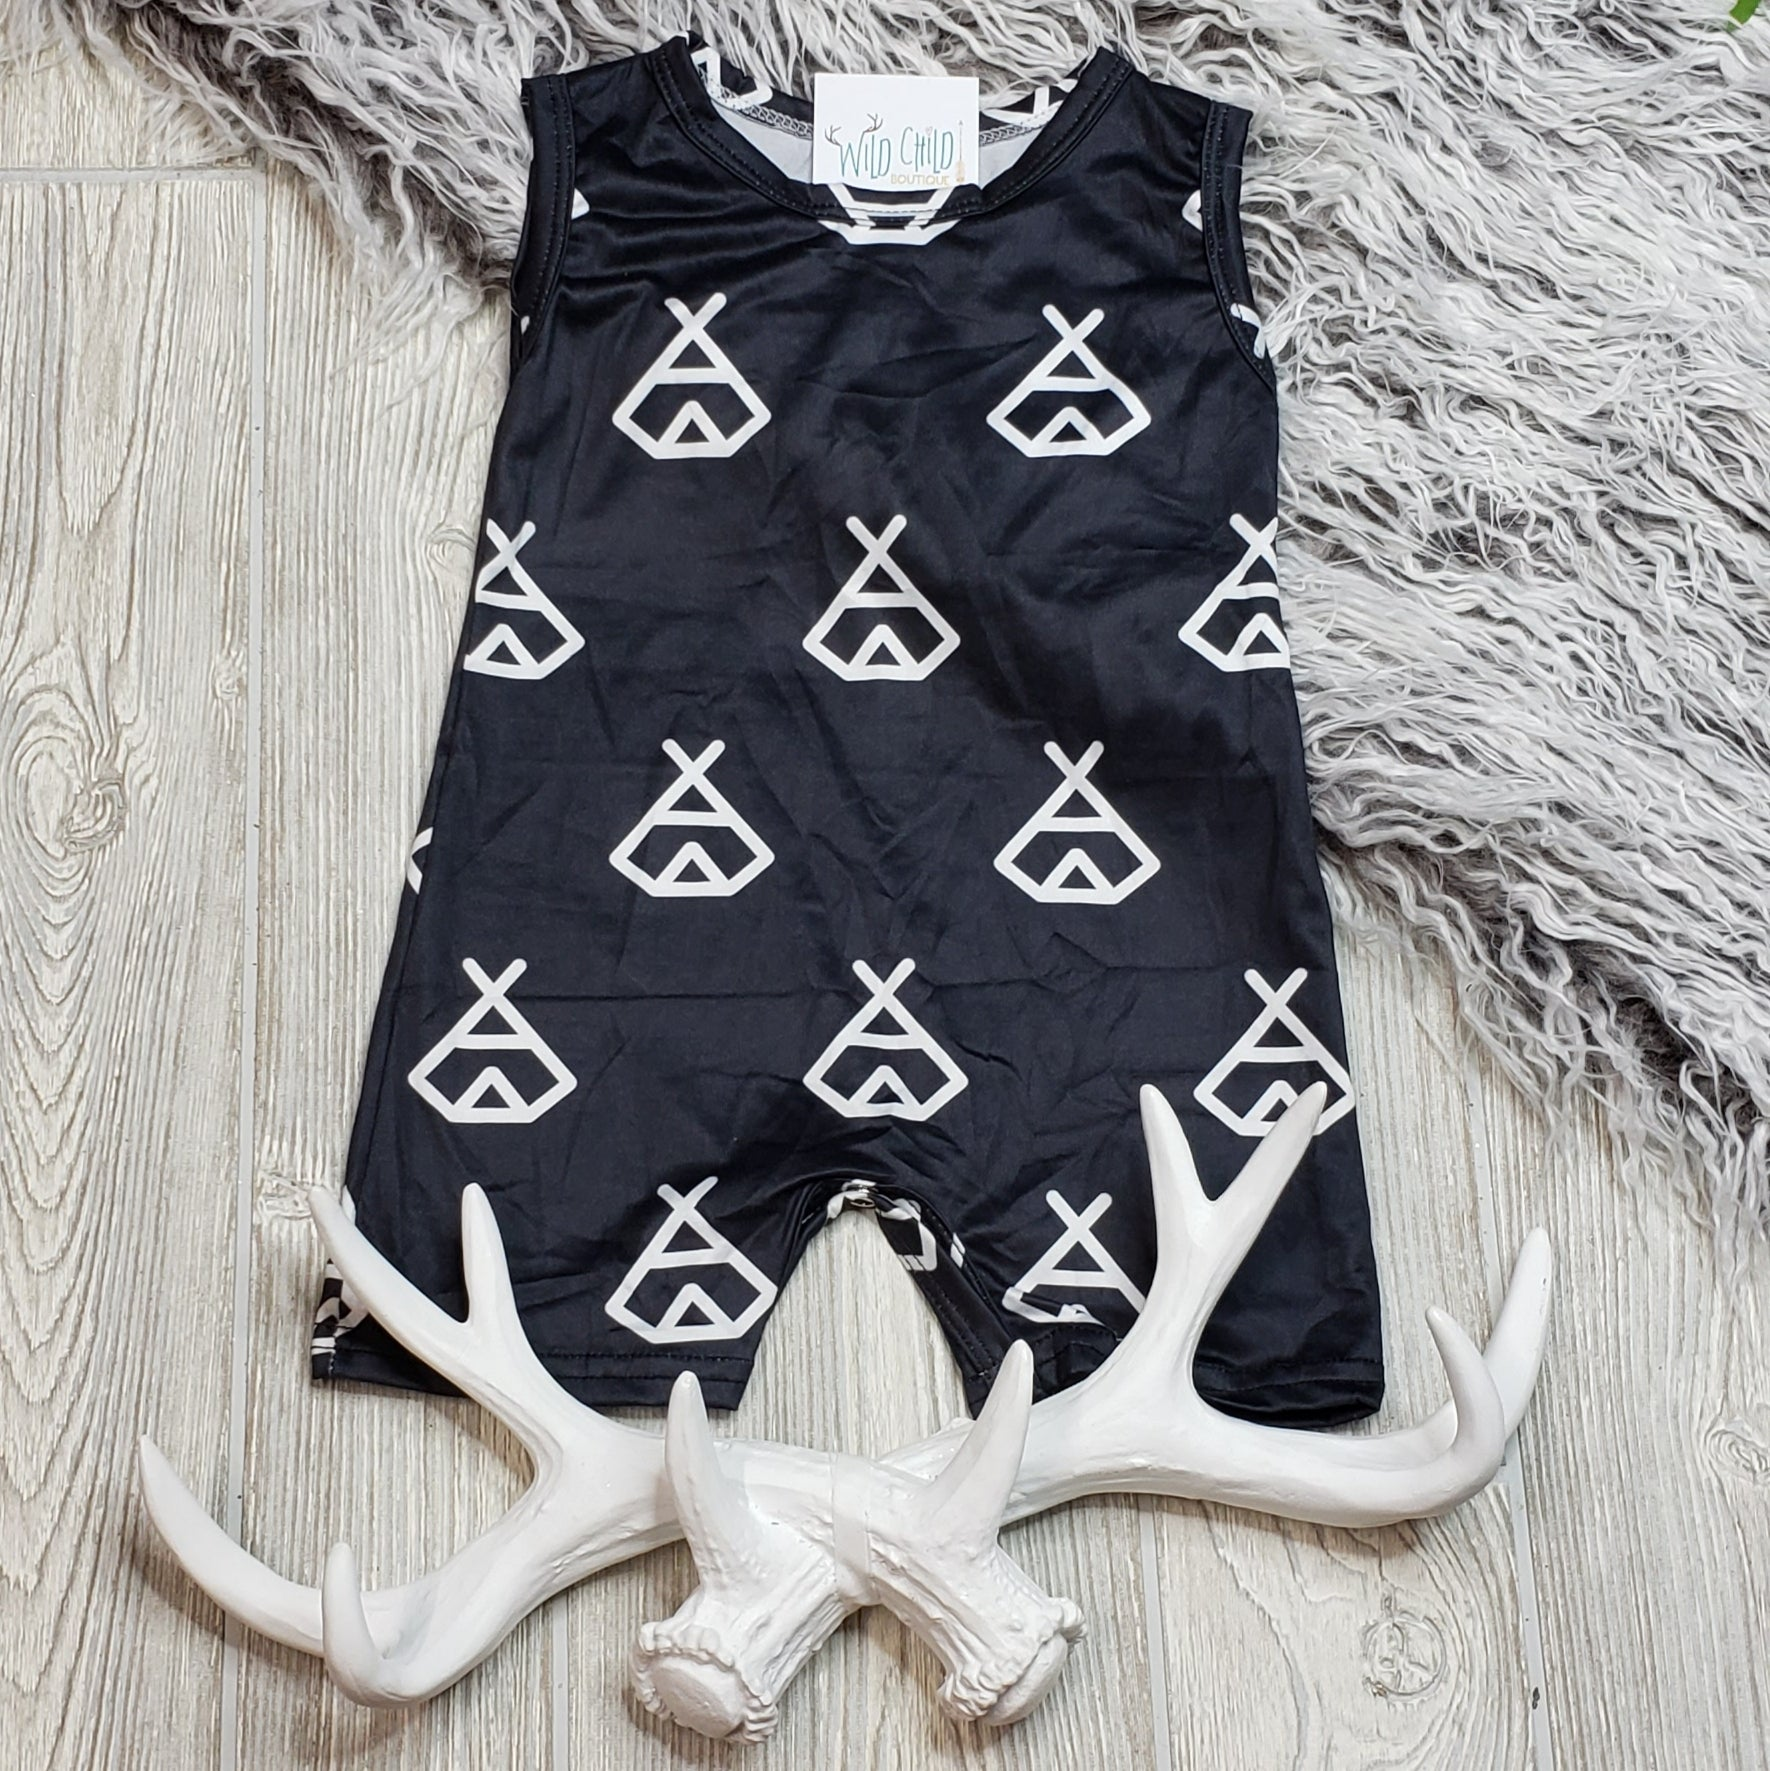 Black TeePee Shorty One Piece